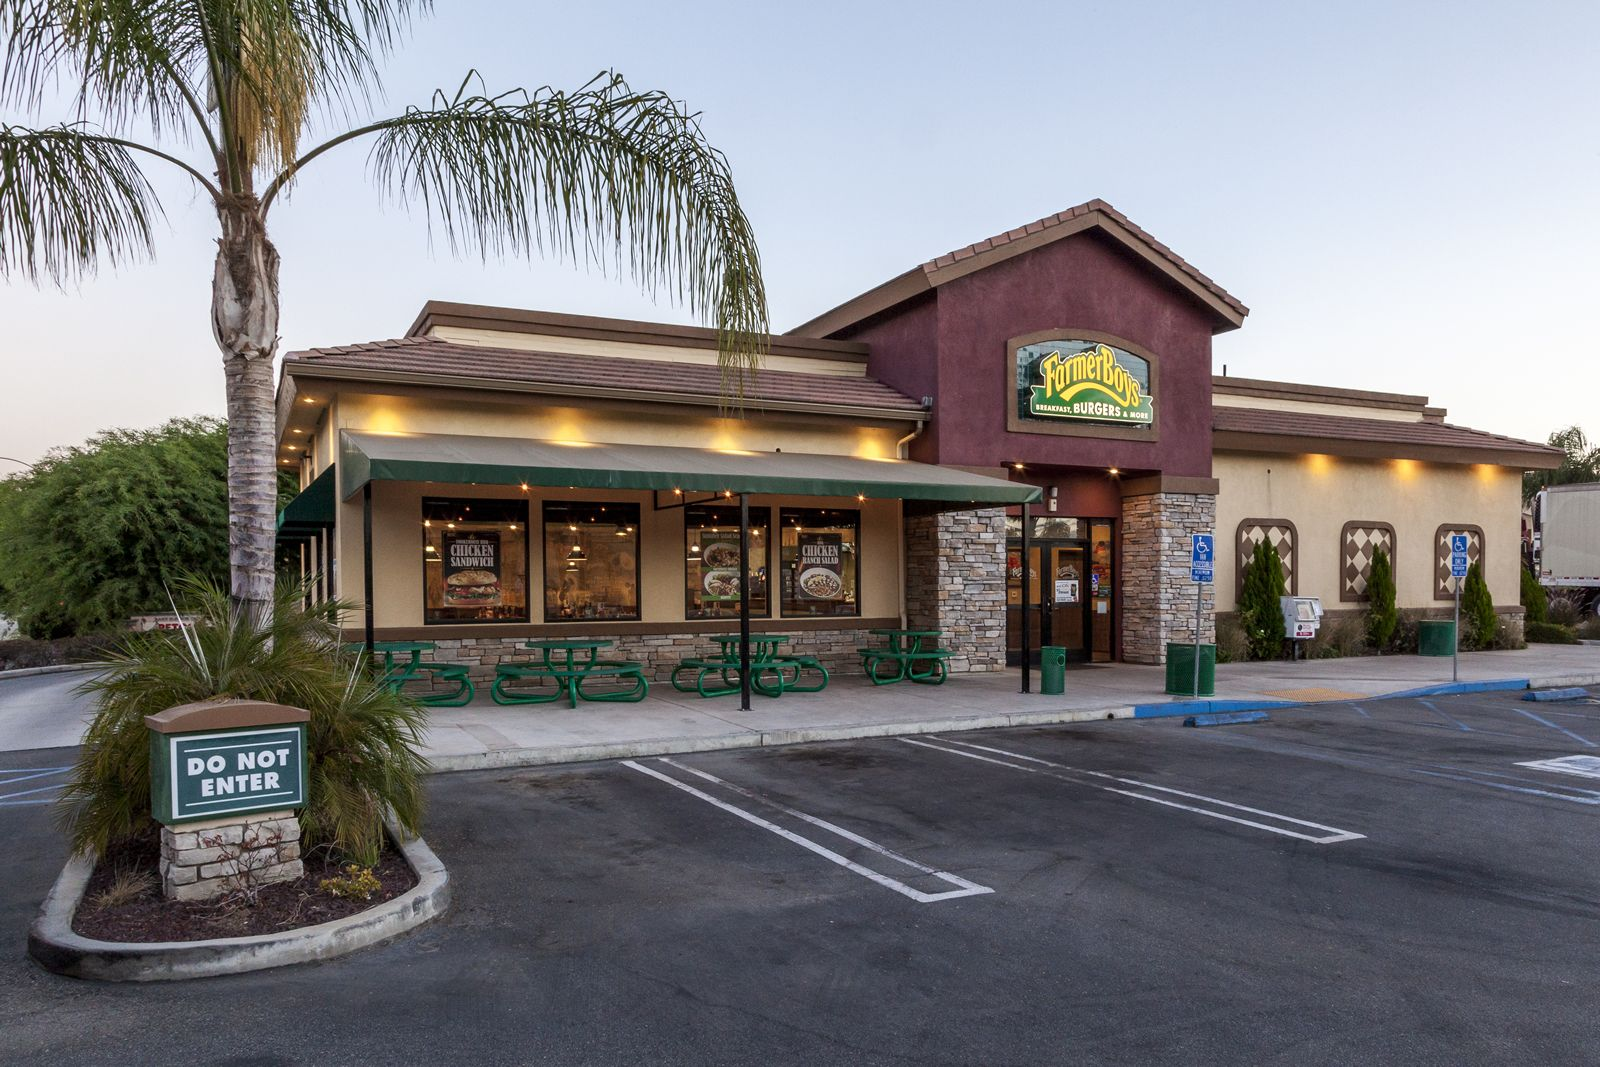 Farmer Boys has announced that all locations throughout California and Nevada are still open and shifting operations to emphasize phone-ahead ordering, carryout, and drive-thru service at applicable locations to comply with all state and local regulations and mandates regarding restaurant operations.